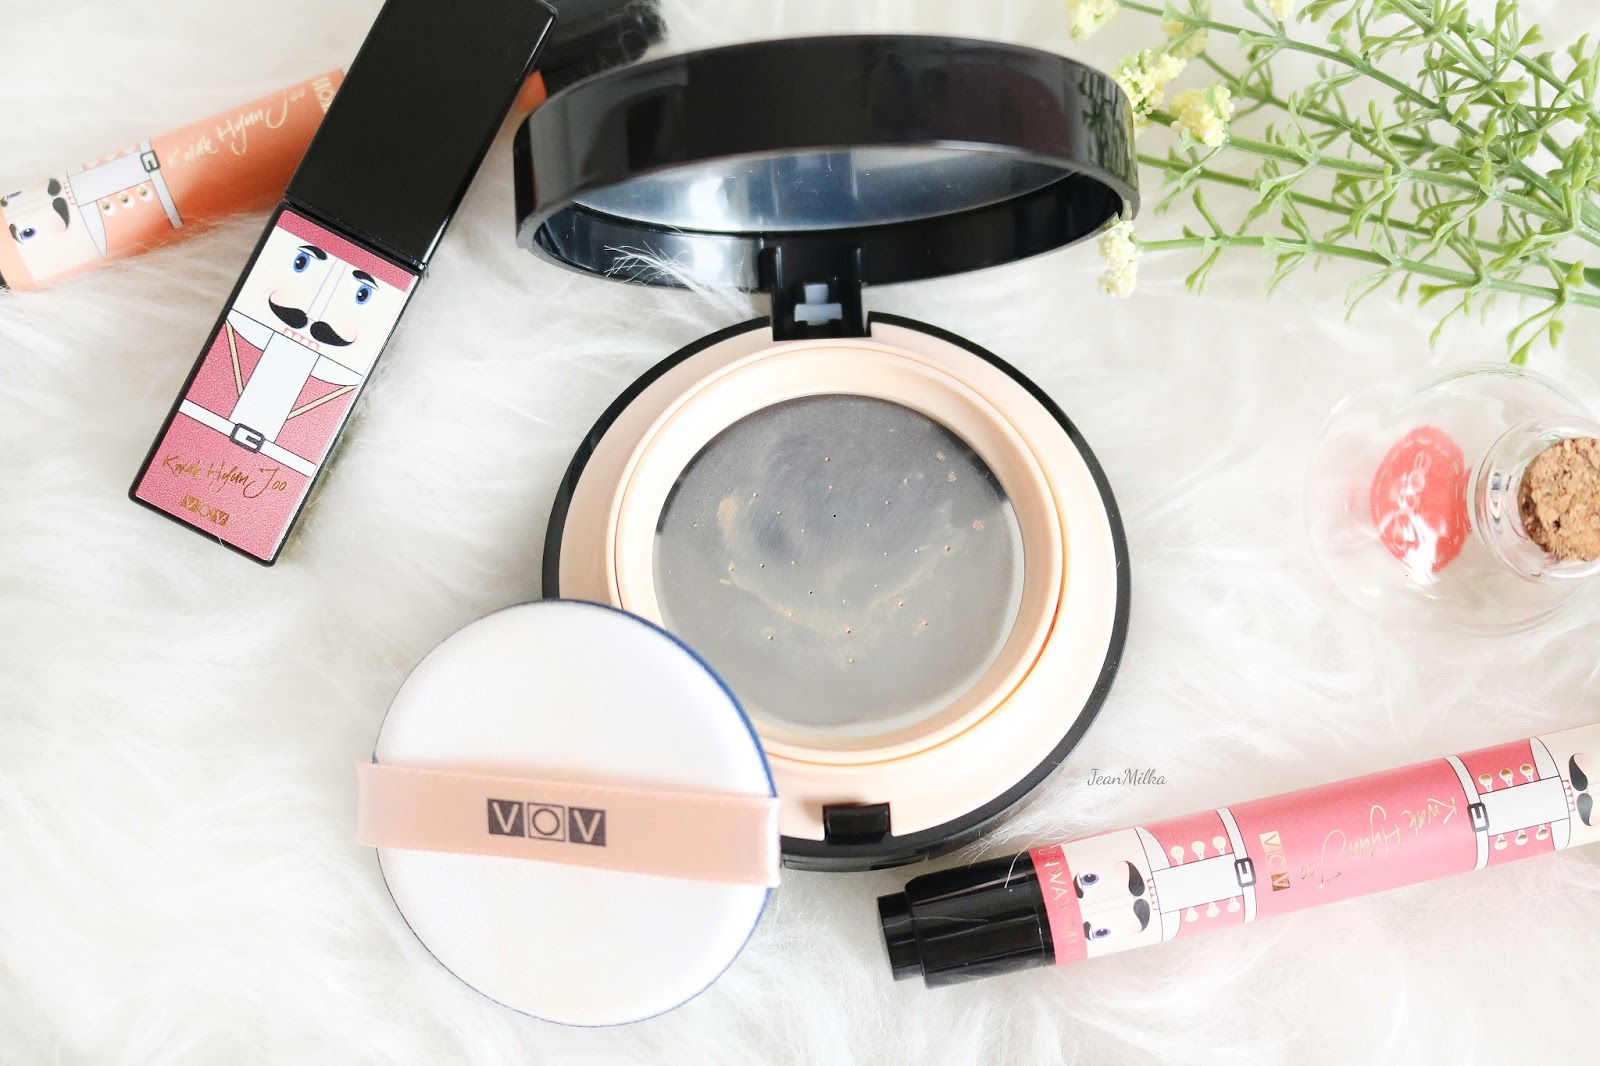 vov, vov cosmetics, vov runway, vov x kwak hyun joo, vov makeup, makeup, beauty, korean, review